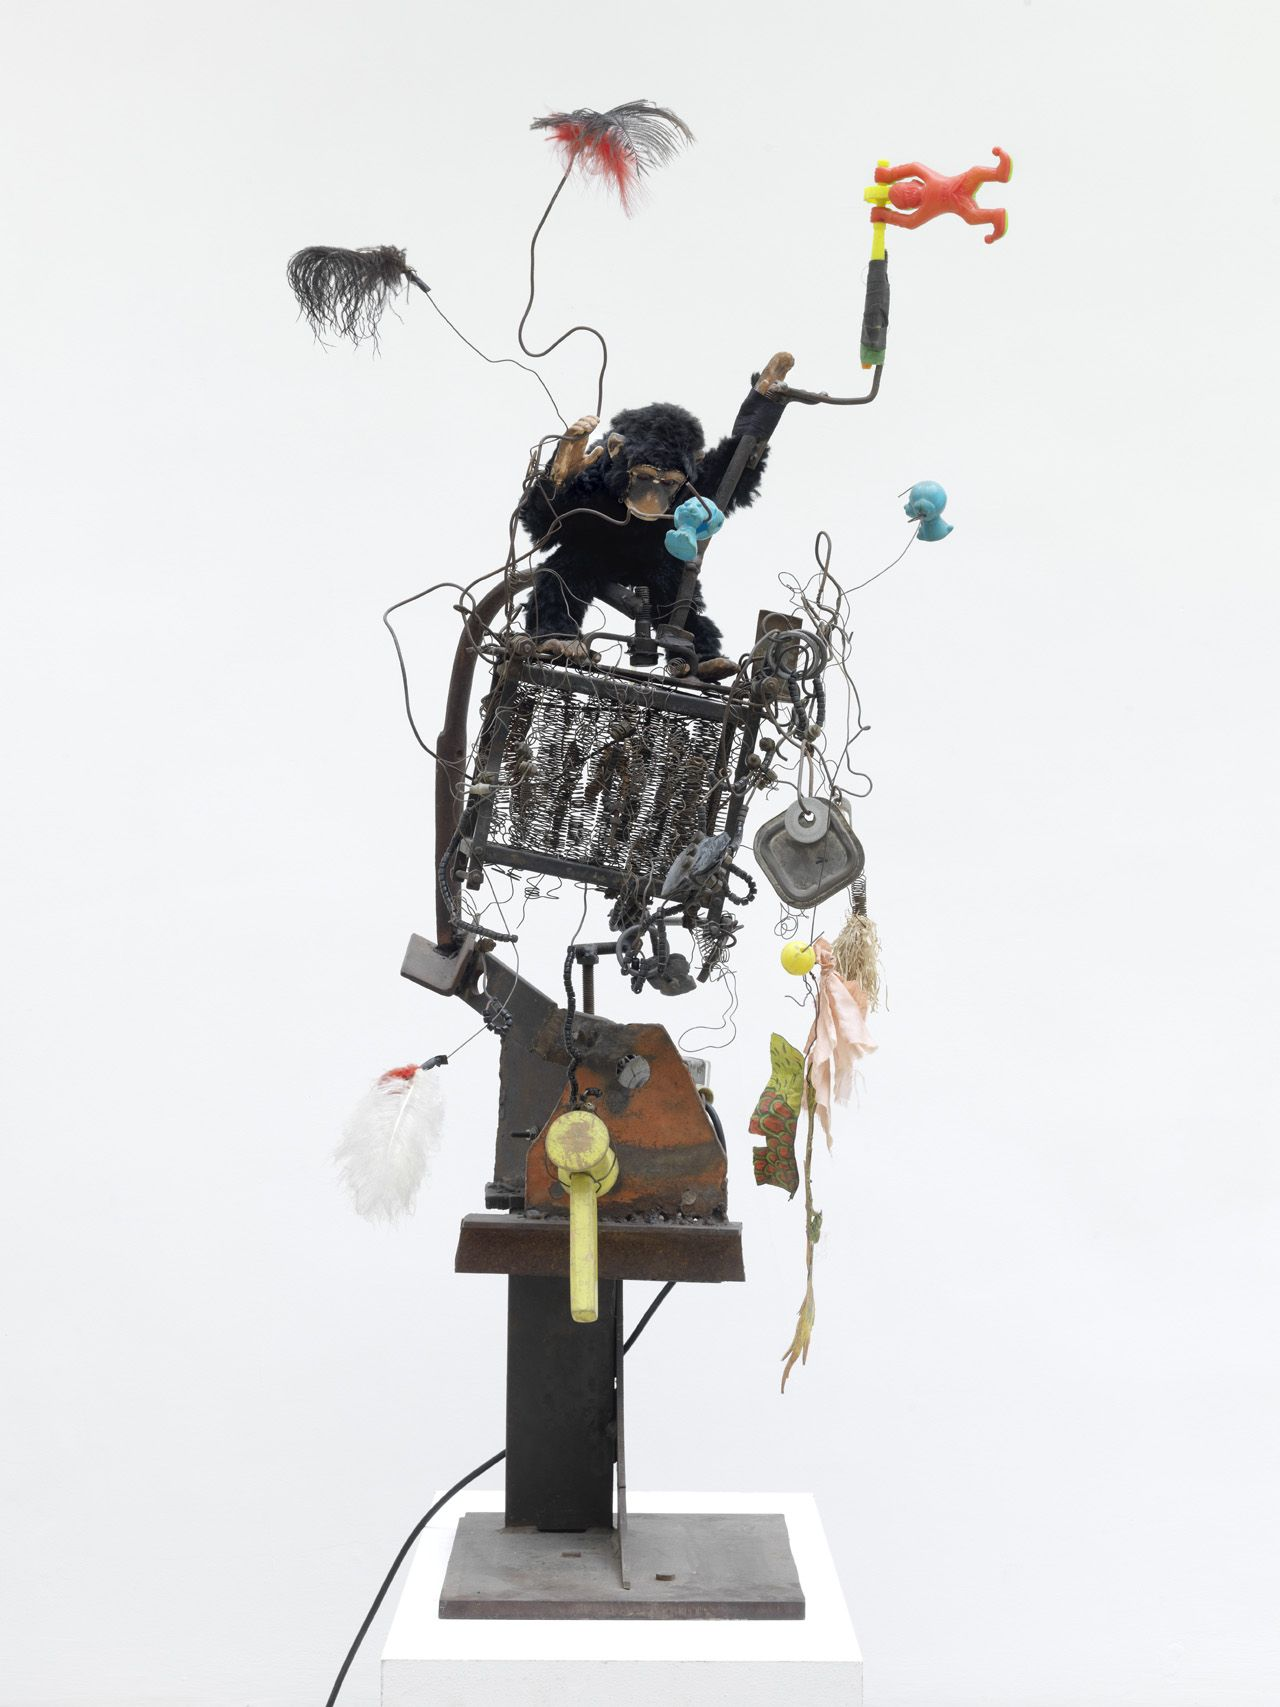 """Jean Tinguely, """"Wackel-Baluba"""" (1963), steel plate base, iron bars, springs and wires, plastic toys, feathers, toy monkey, electric motor, 49 5/8 x 15 3/4 x 25 1/4 in (courtesy NCAF et Galerie GP & N Vallois, Paris; photo by André Morin)"""